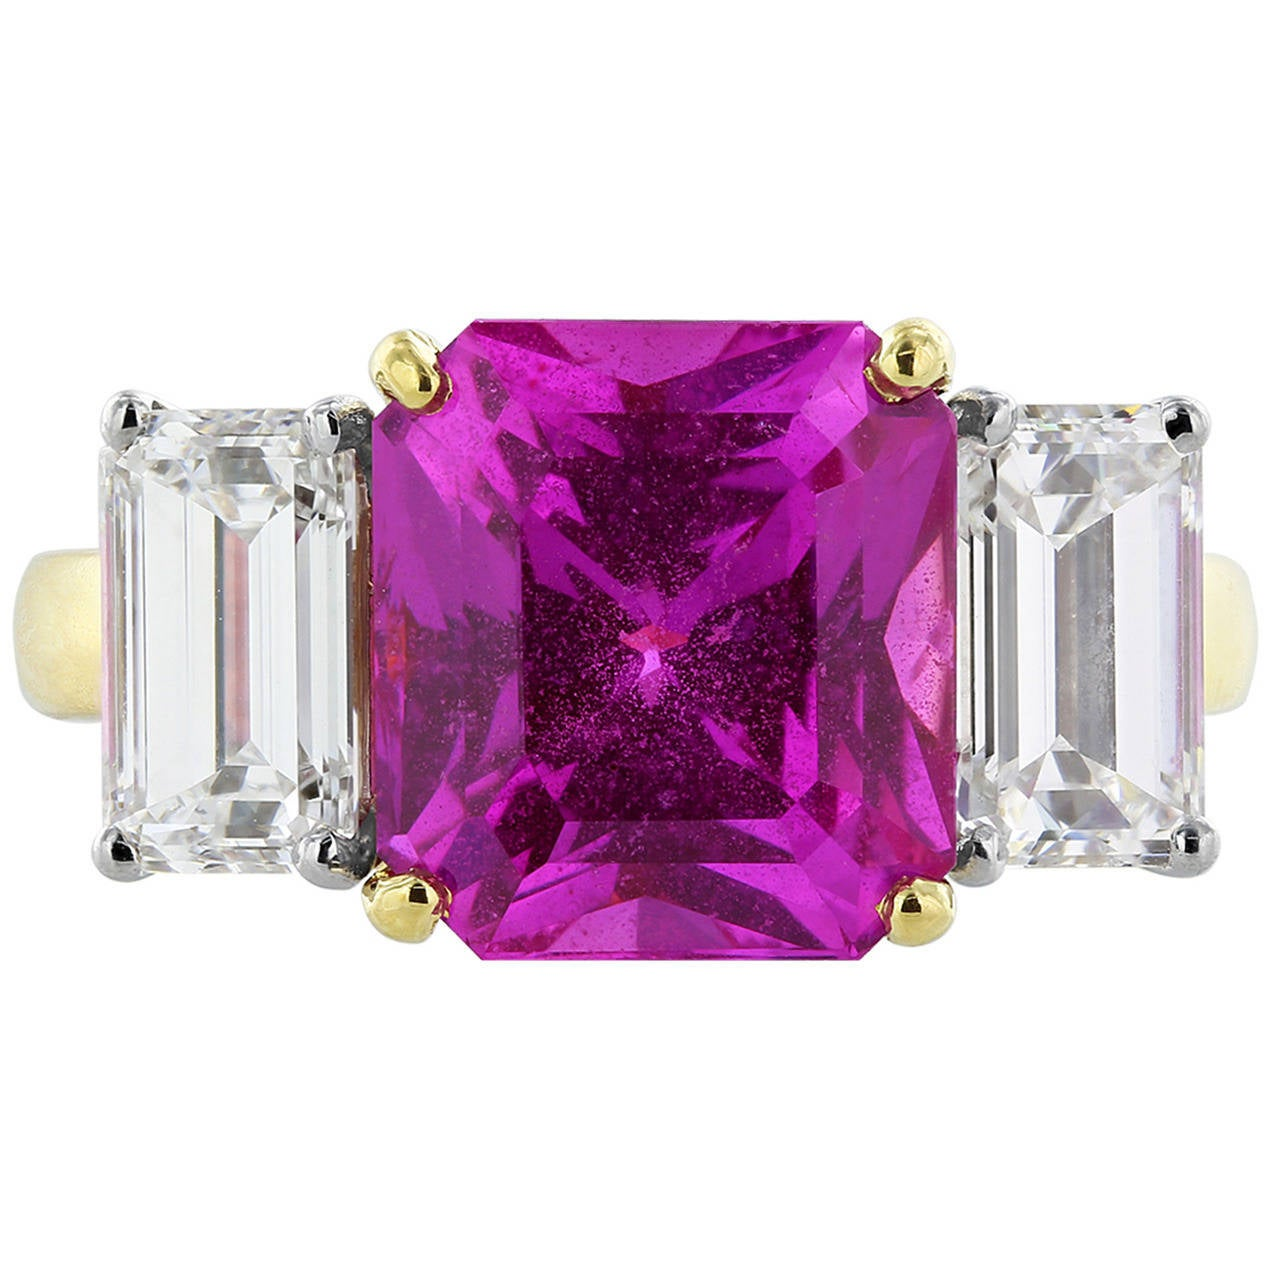 6.13 Carat Pink Sapphire Diamond Gold Platinum Three Stone Ring